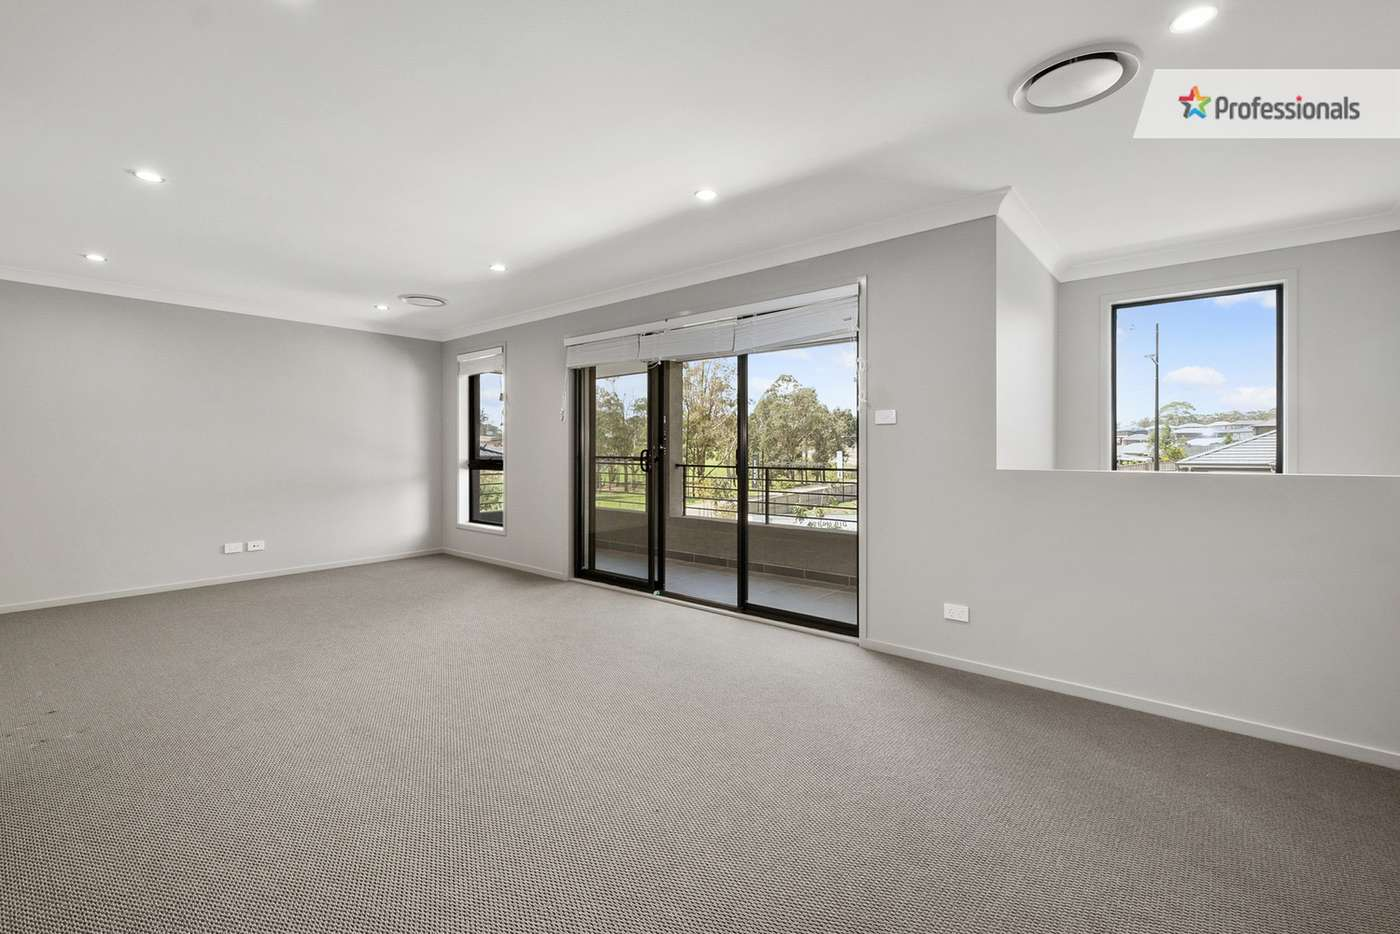 Fifth view of Homely house listing, 3 Corvus Way, Box Hill NSW 2765